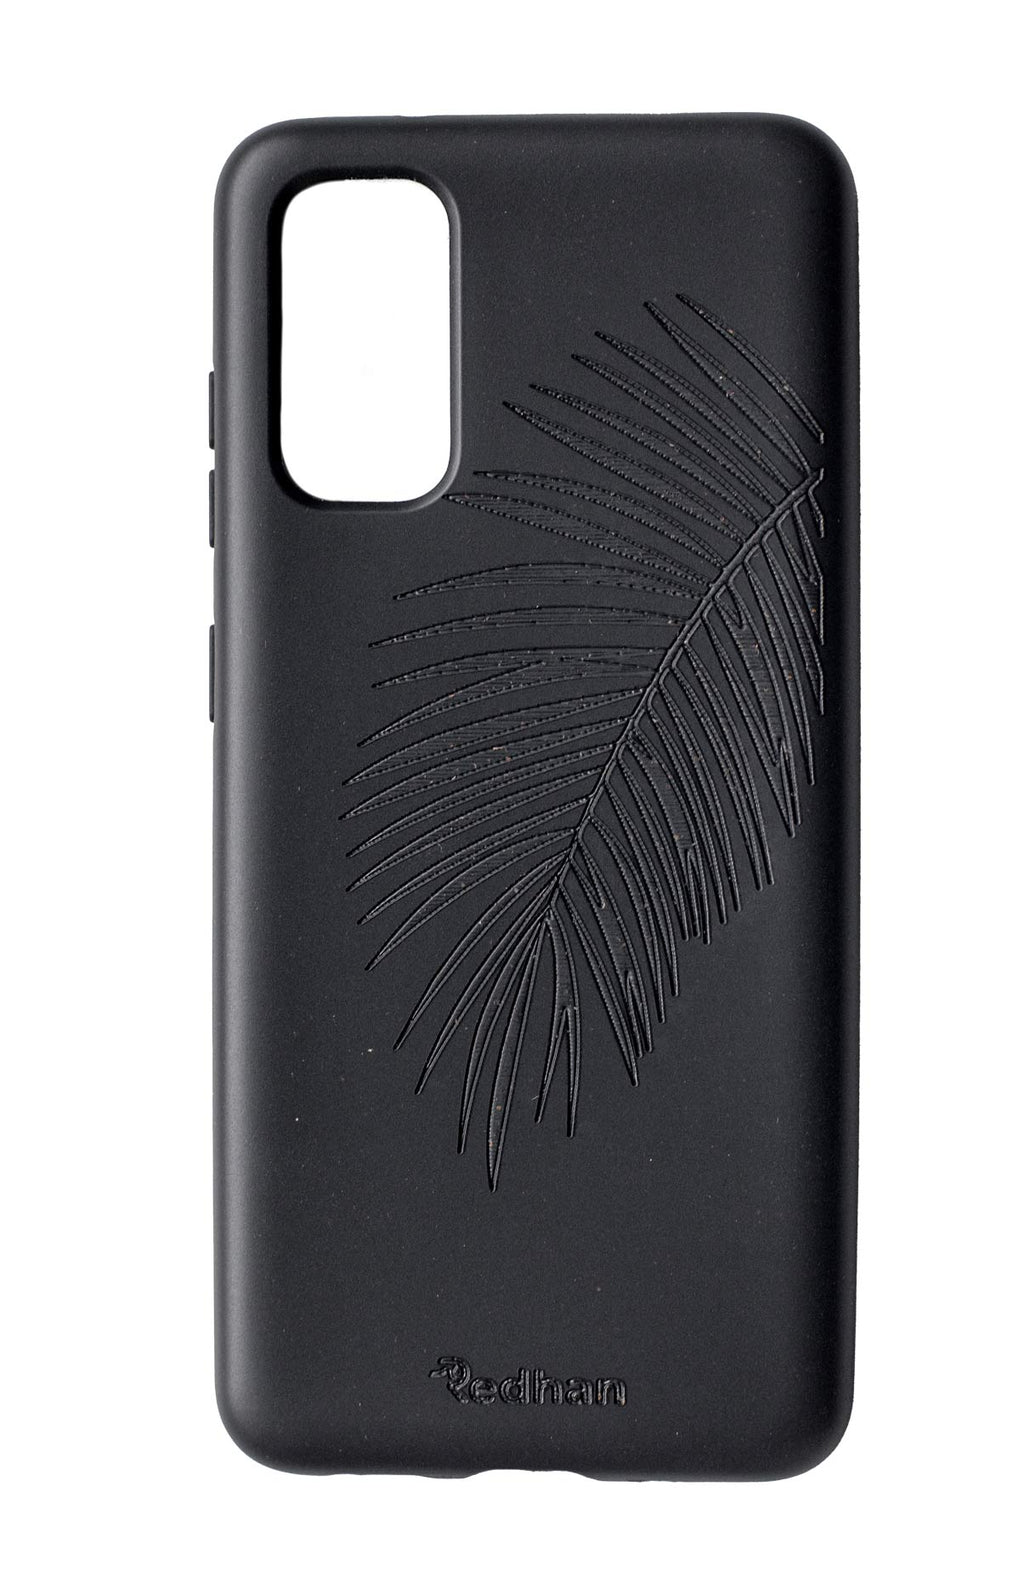 Eco-Friendly Phone Case Black, Samsung Galaxy S20 Phone case in Black